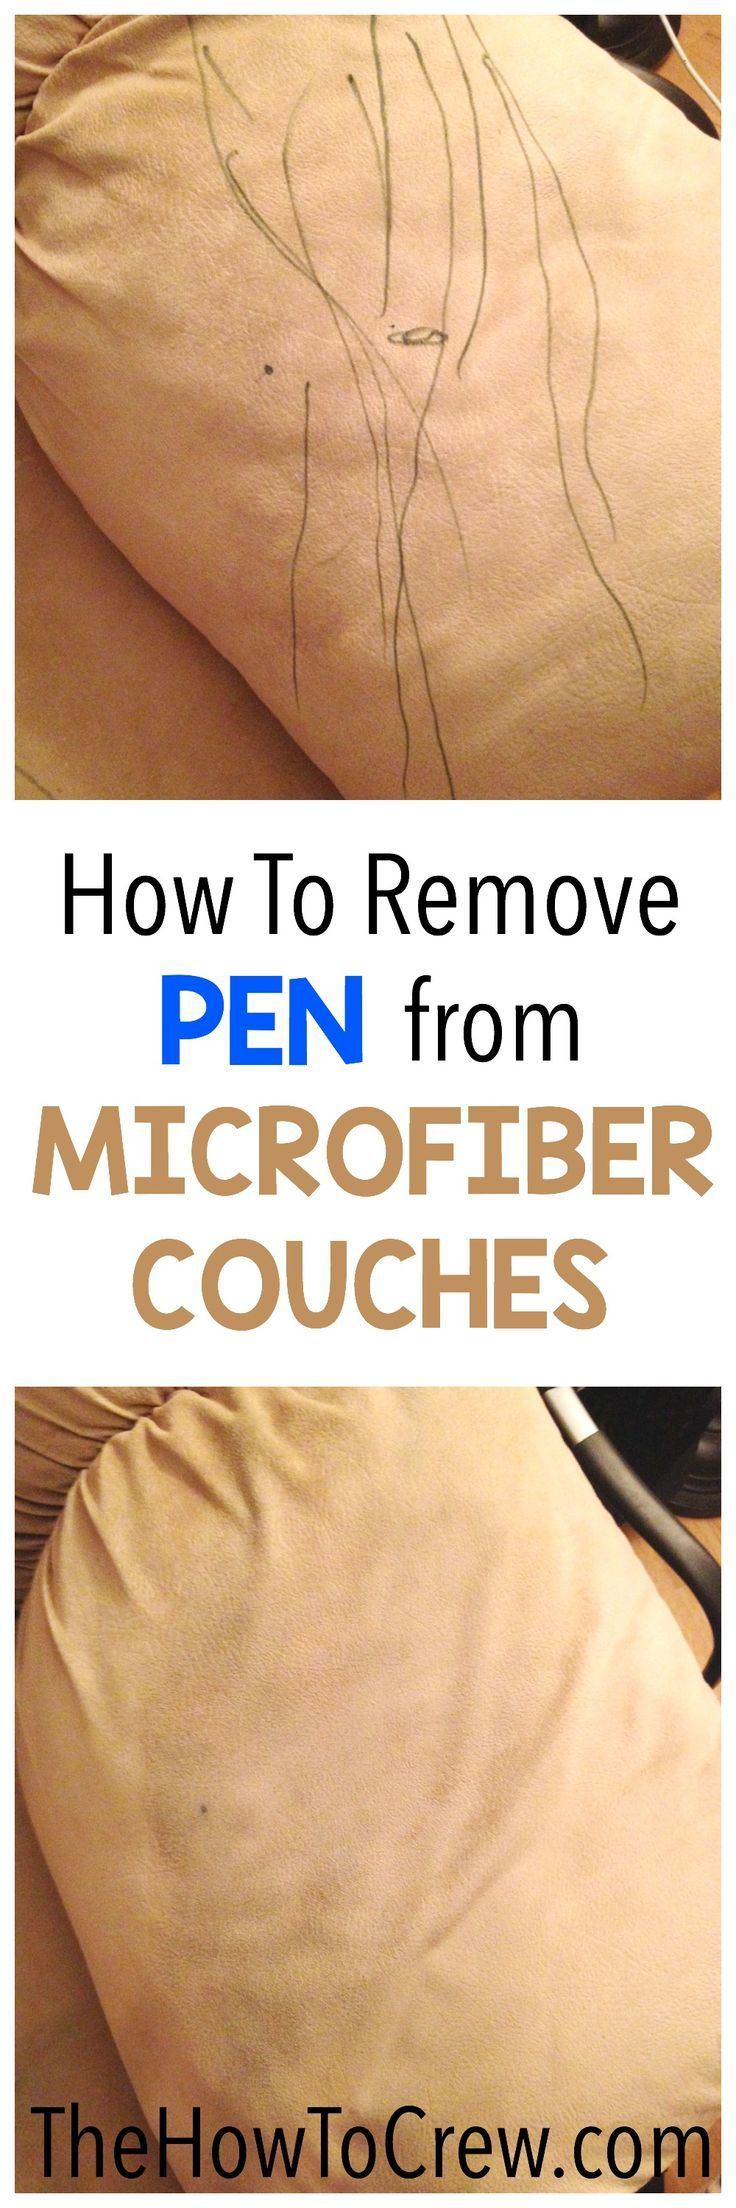 How to remove pen from microfiber couches on http